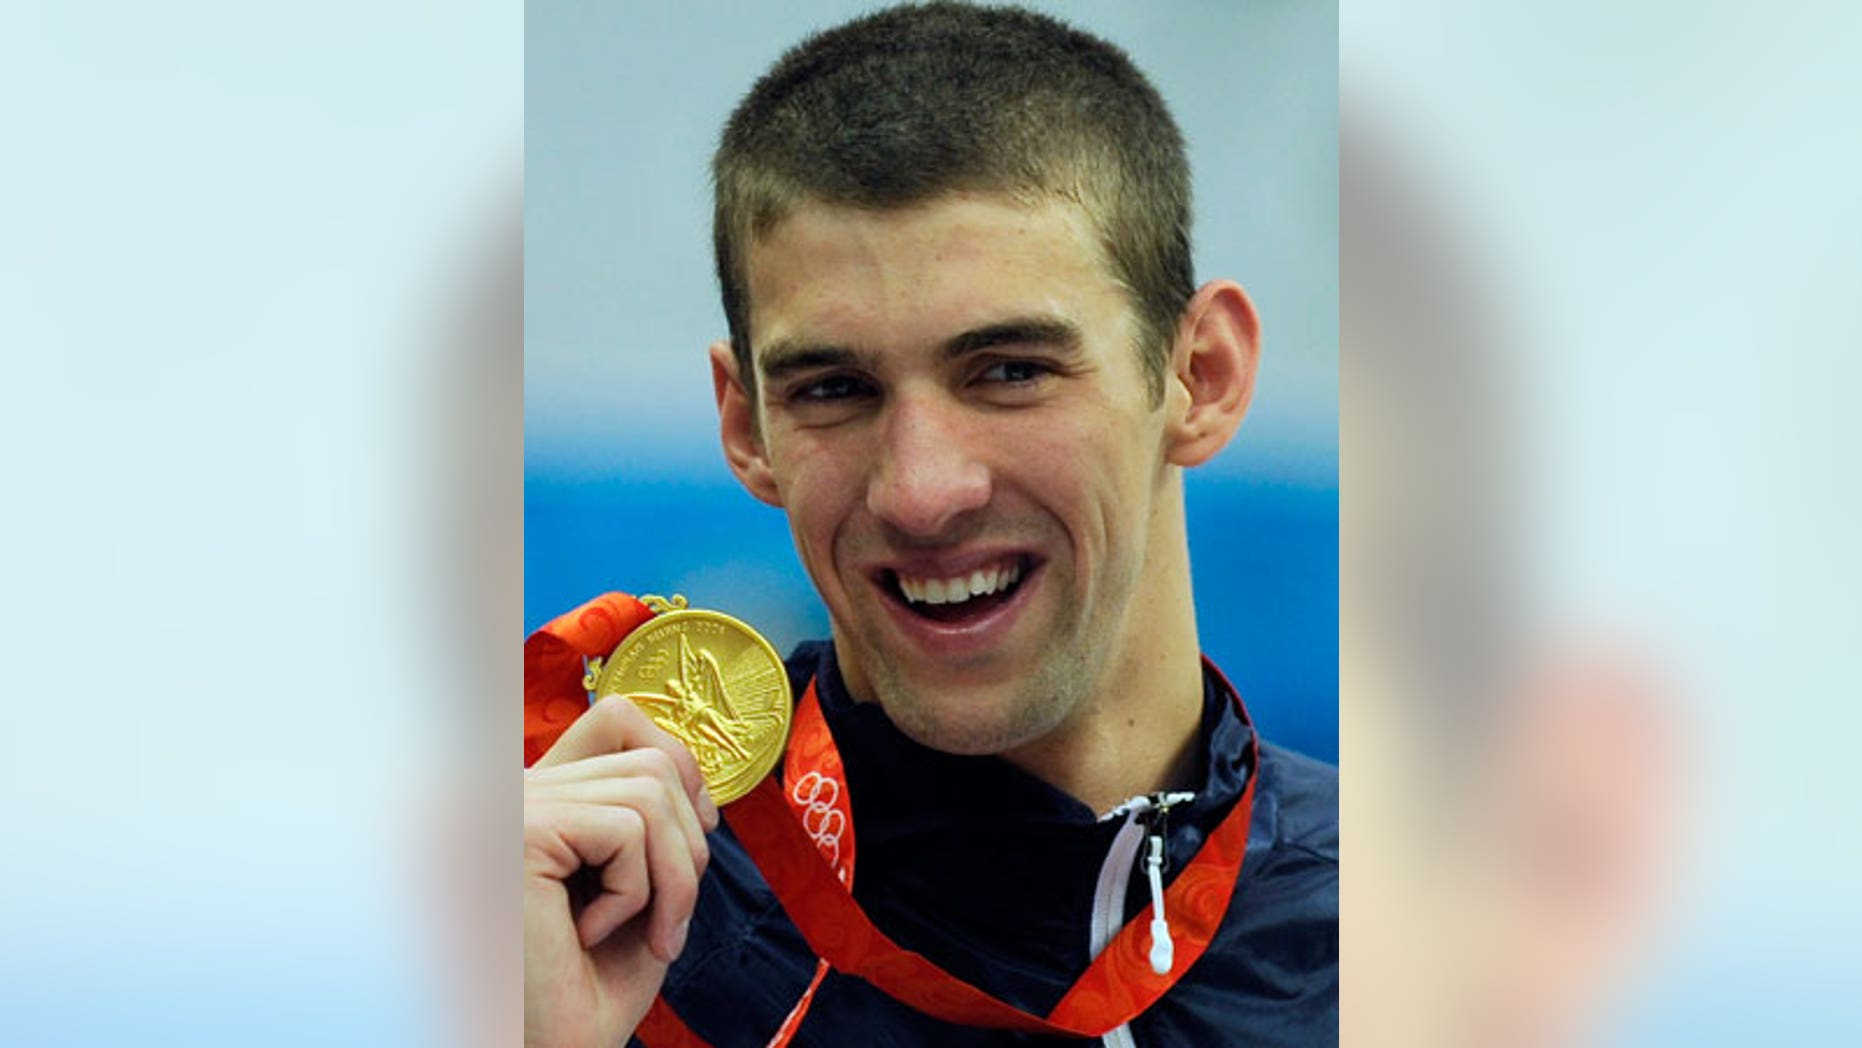 Michael Phelps could still emerge from his pot smoking scandal with his good reputation intact - but he must be careful.